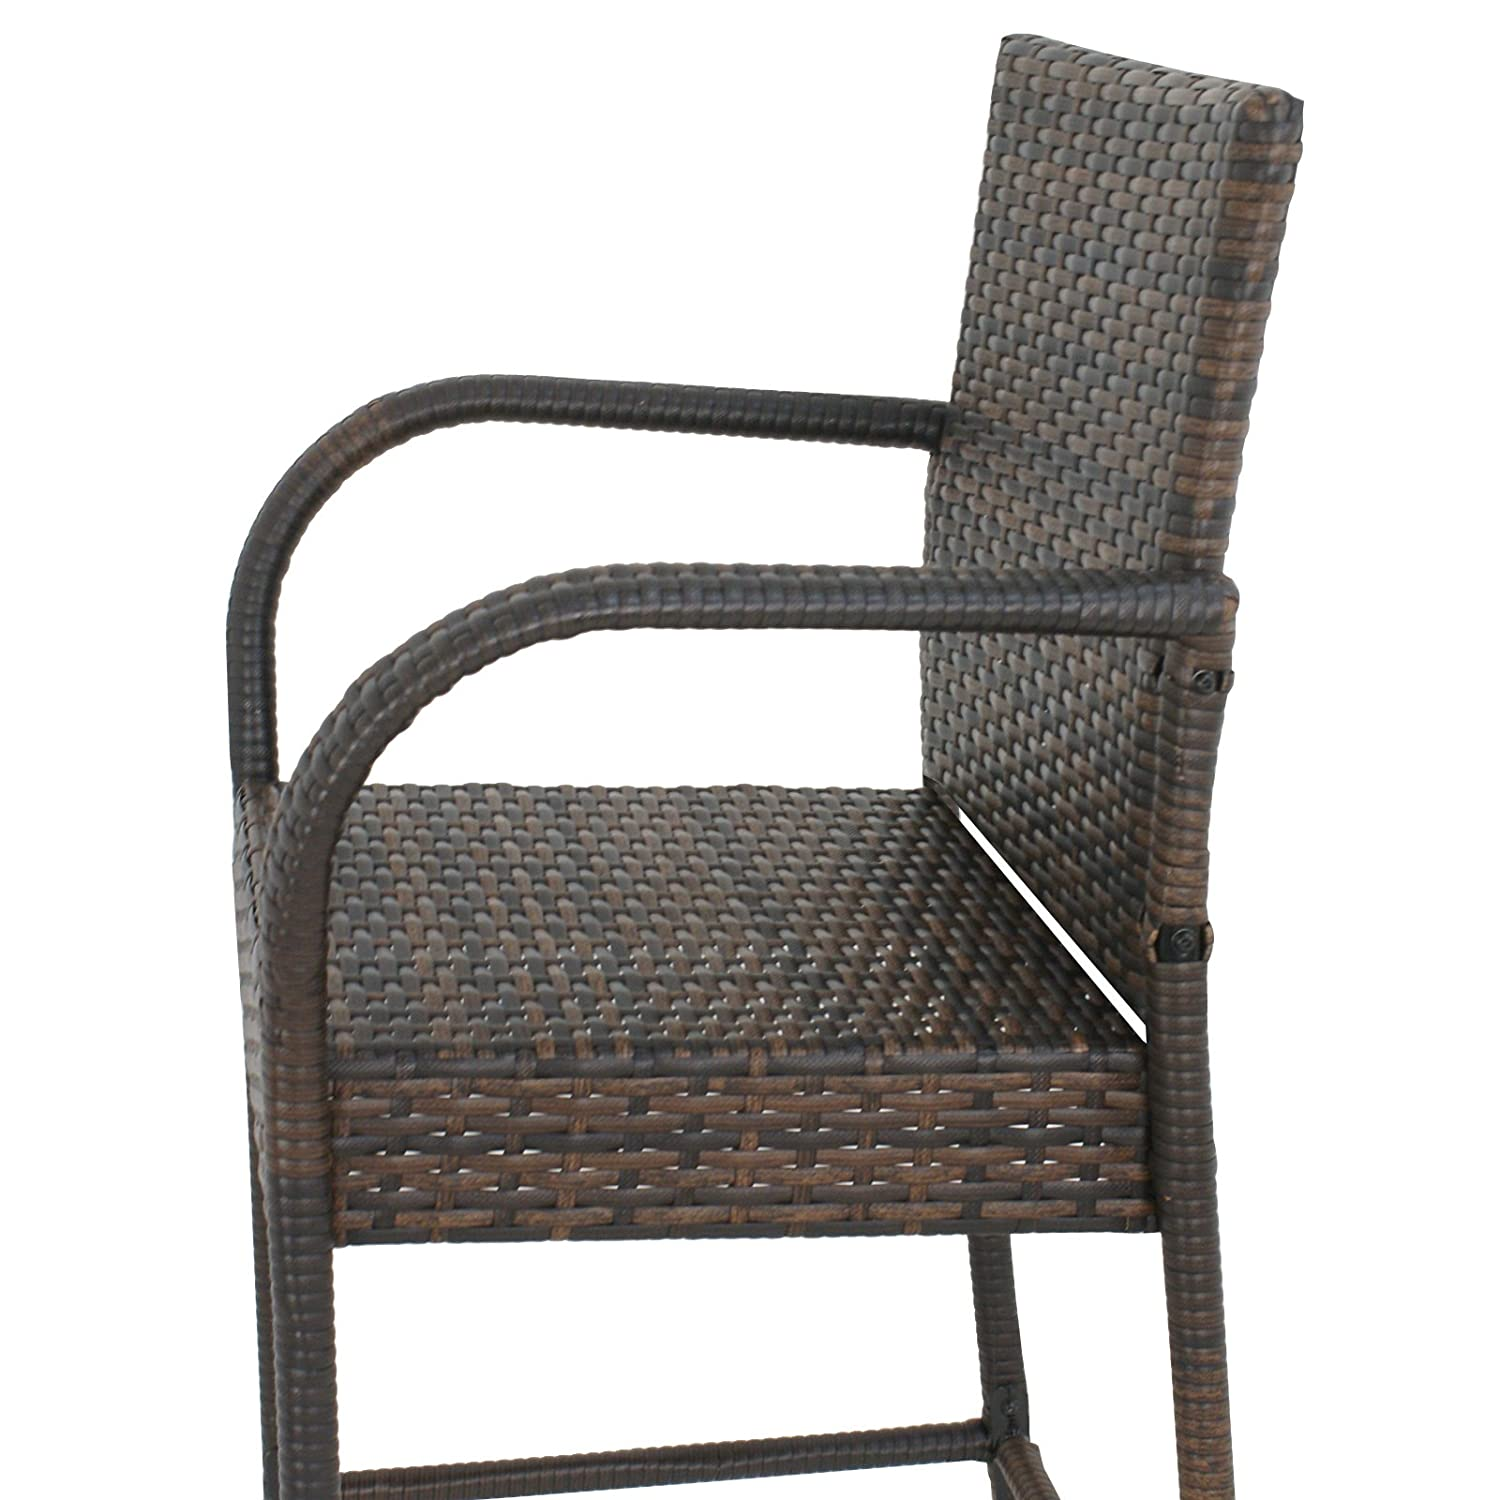 BBBuy Wicker Bar Stool Outdoor Backyard Chair Patio Furniture with Armrest